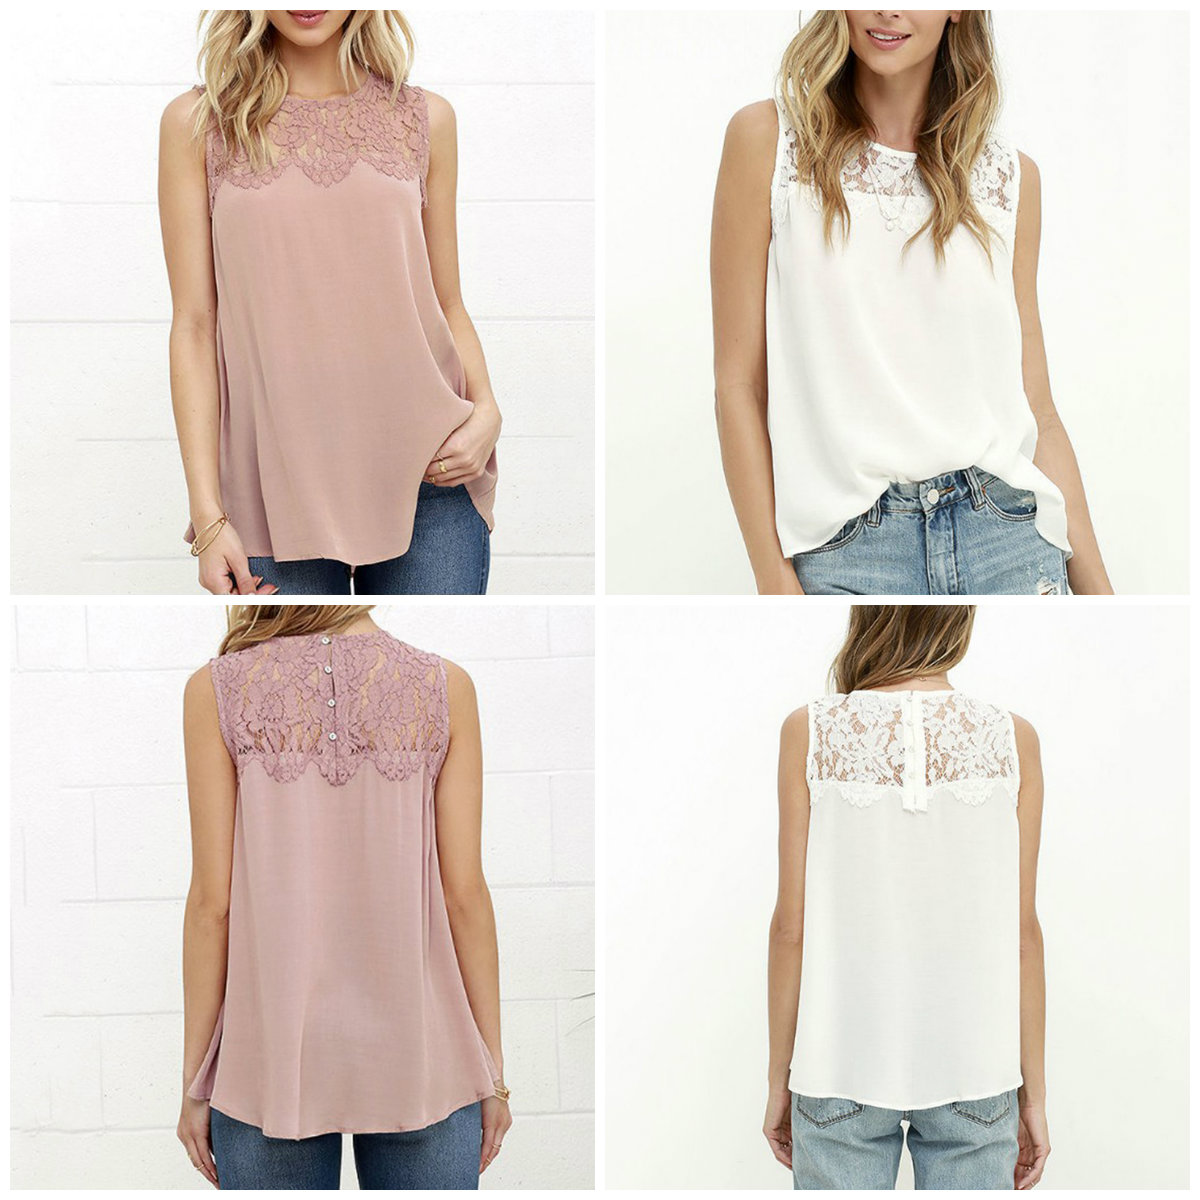 Summer Office Women   Tops   Pink White Floral Lace Chiffon   Tank     Top   Sleeveless   Top   Female Crochet Lace   Tops   S, M, L, XL,XXL,XXXL